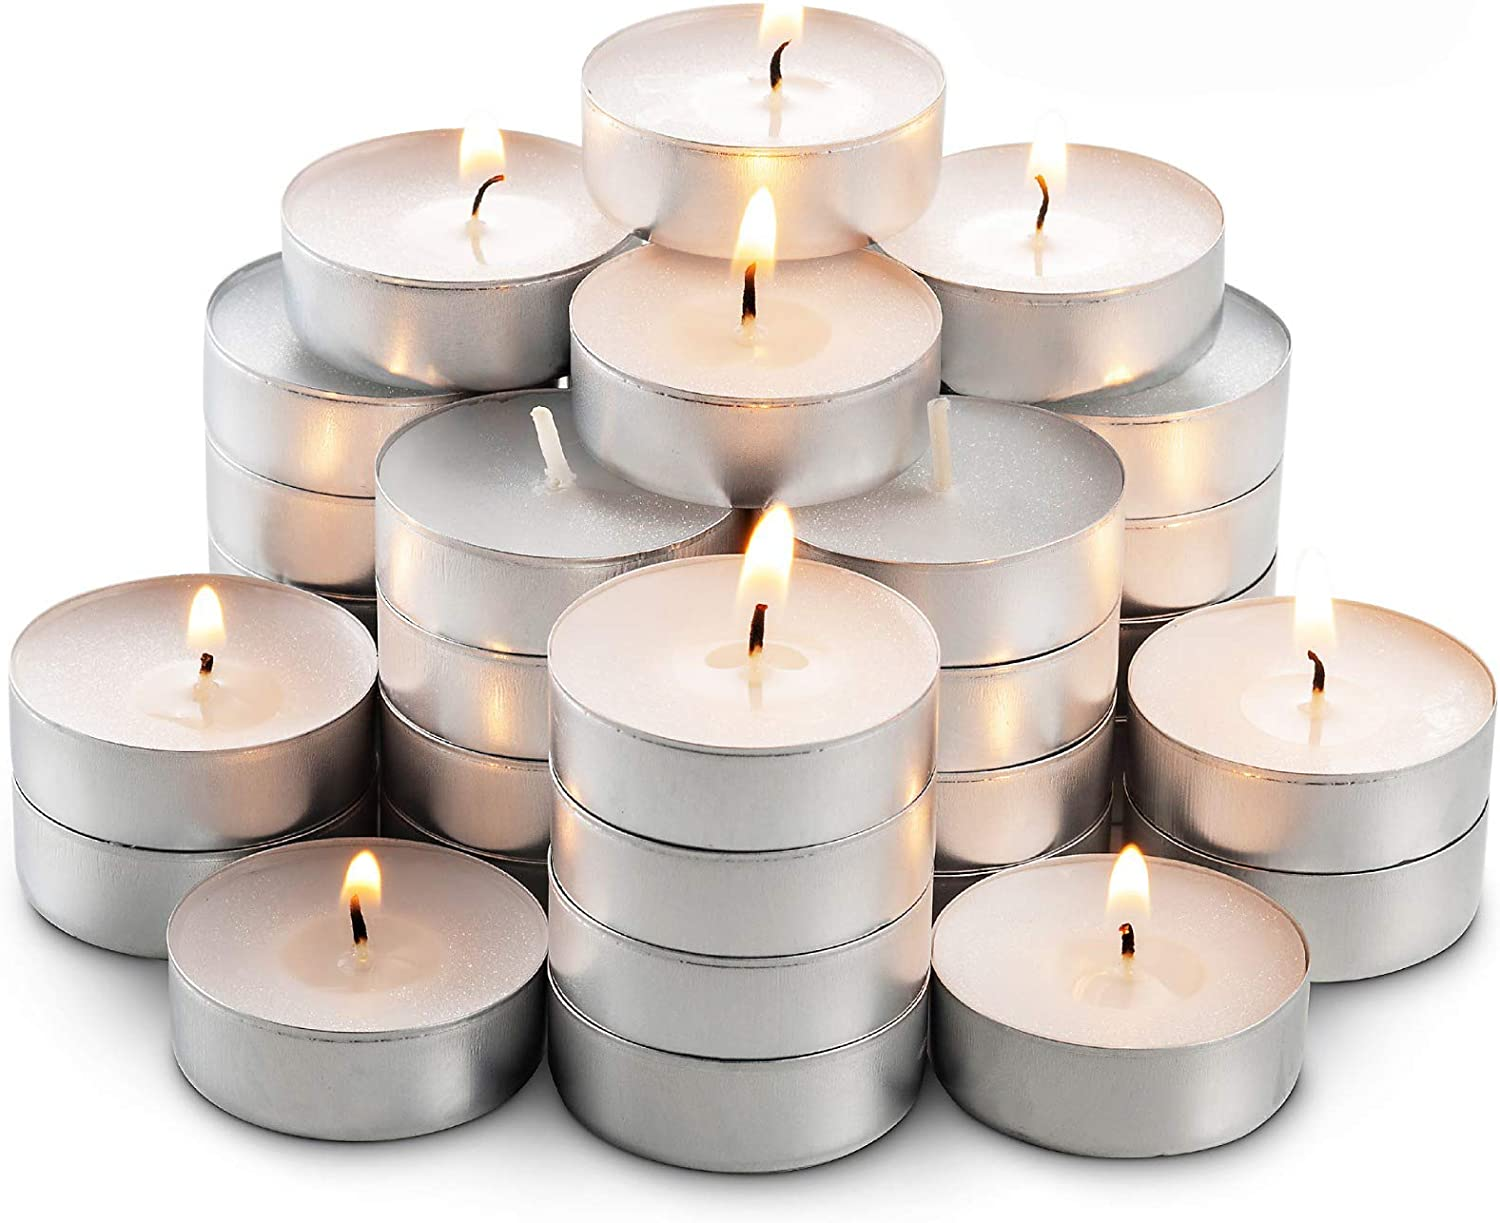 MontoPack Unscented Tea Lights Candles in Bulk | 45 White, Smokeless, Dripless & Long Lasting Paraffin Tea Candles | Small Votive Mini Tealight Candles for Home, Pool, Shabbat, Weddings & Emergencies